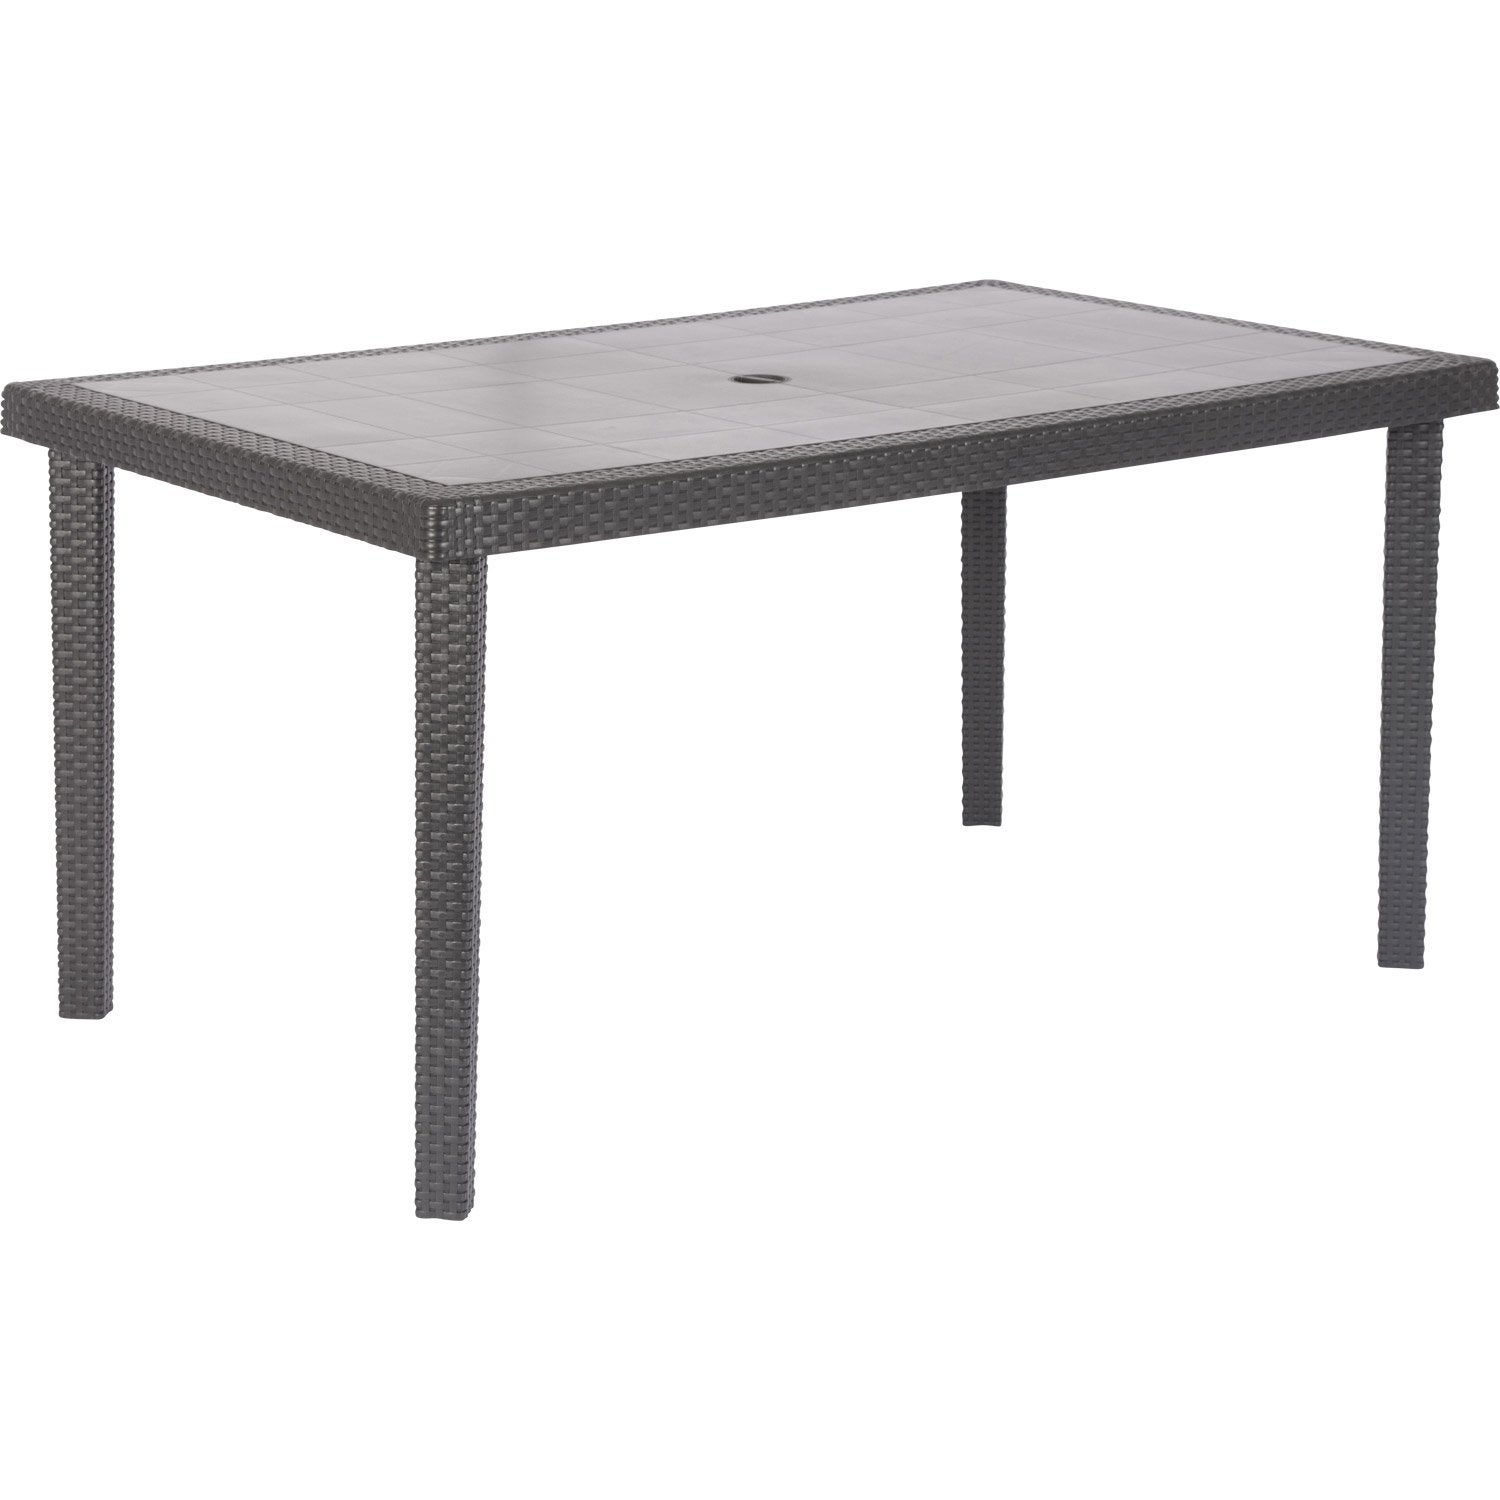 Table de jardin boh me rectangulaire anthracite 6 for Table de jardin pliante plastique